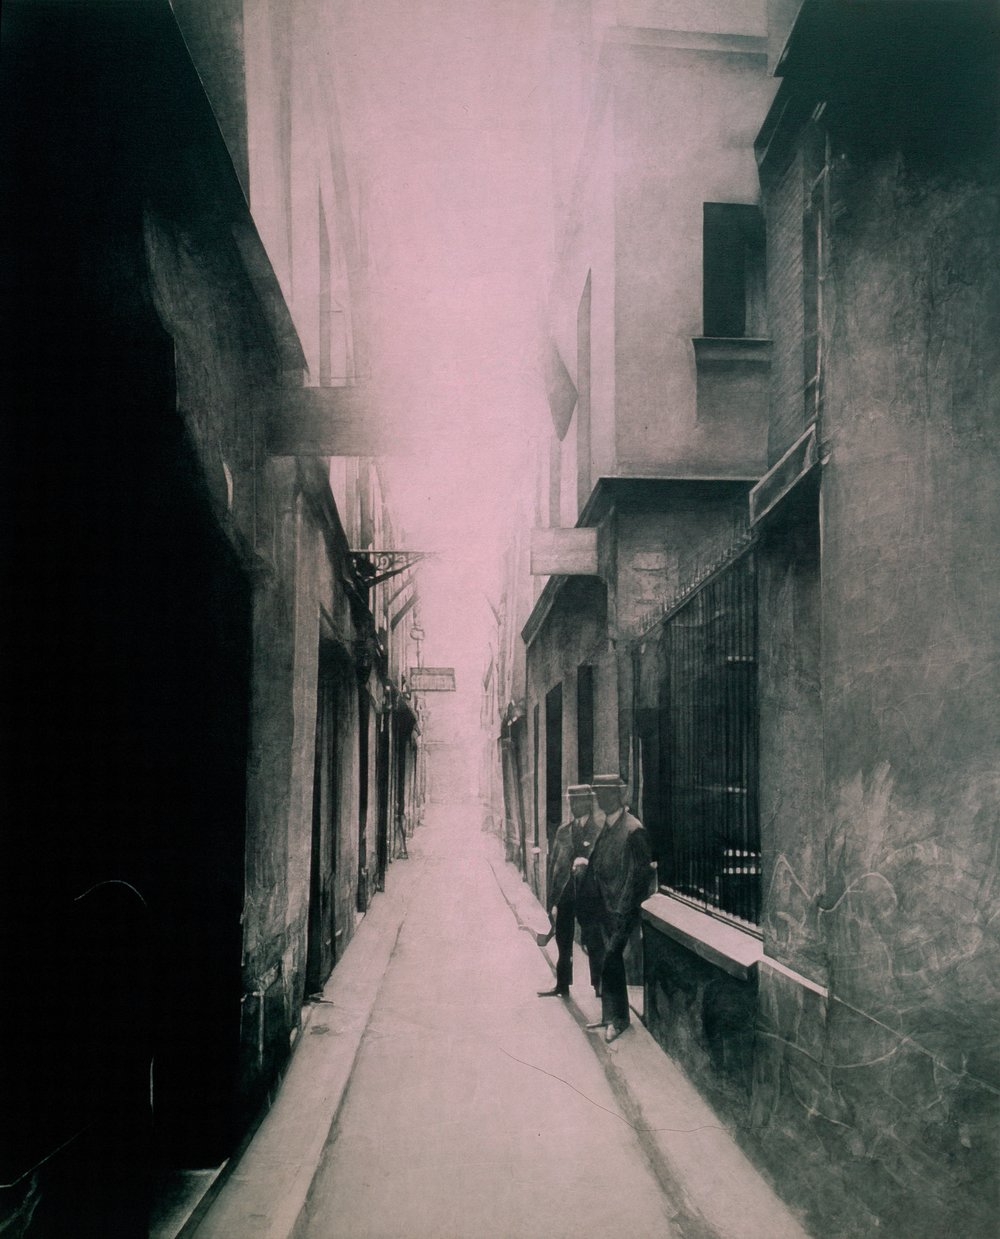 after Atget, 1907 (Impasse Saint-Denis, 177 rue Saint-Denis)    60x48  , acrylic on canvas, 2002